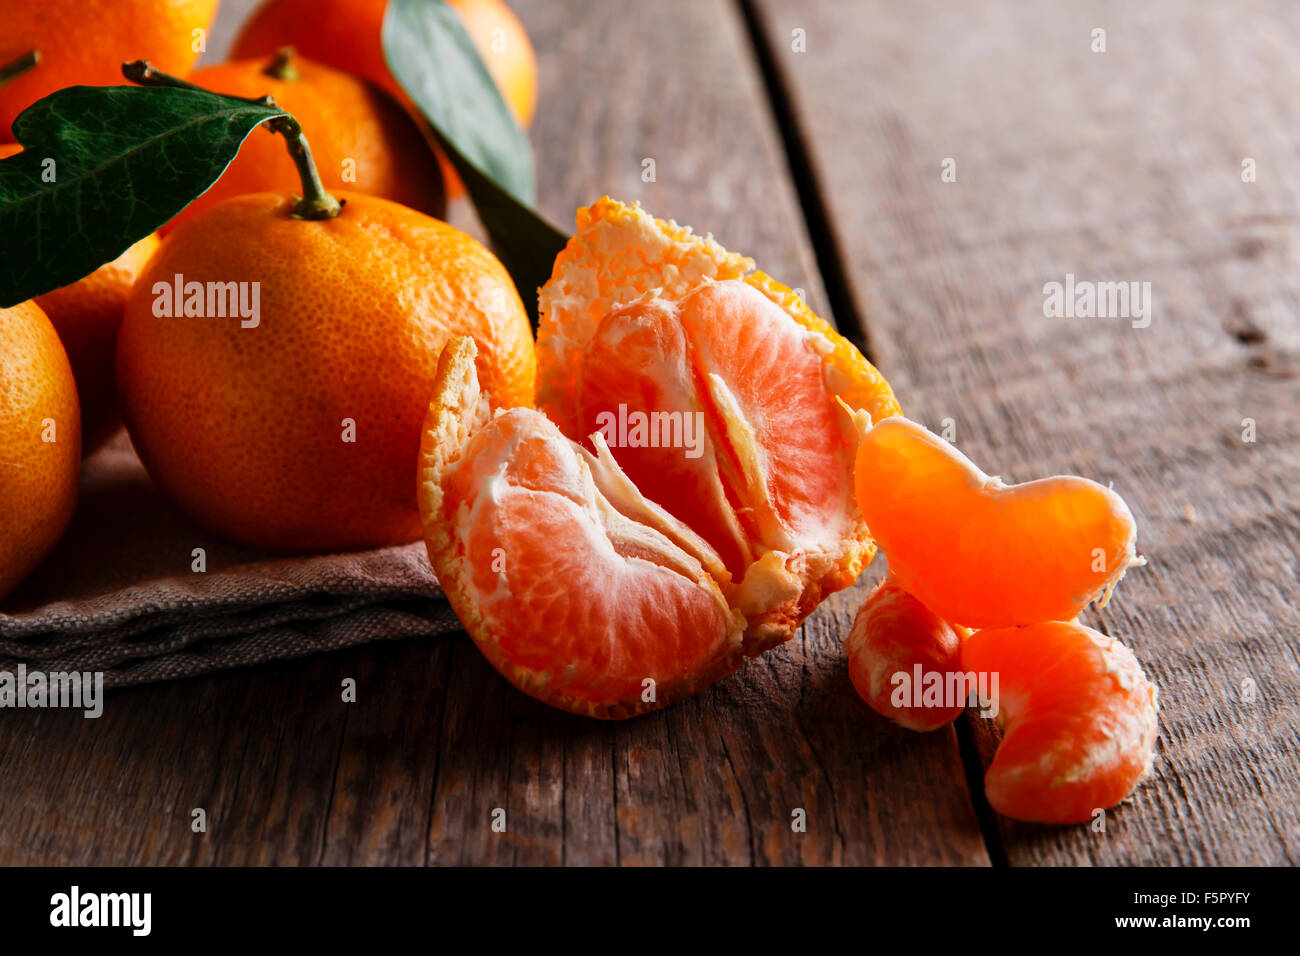 Ripe tangerines with leafs on wooden table Stock Photo